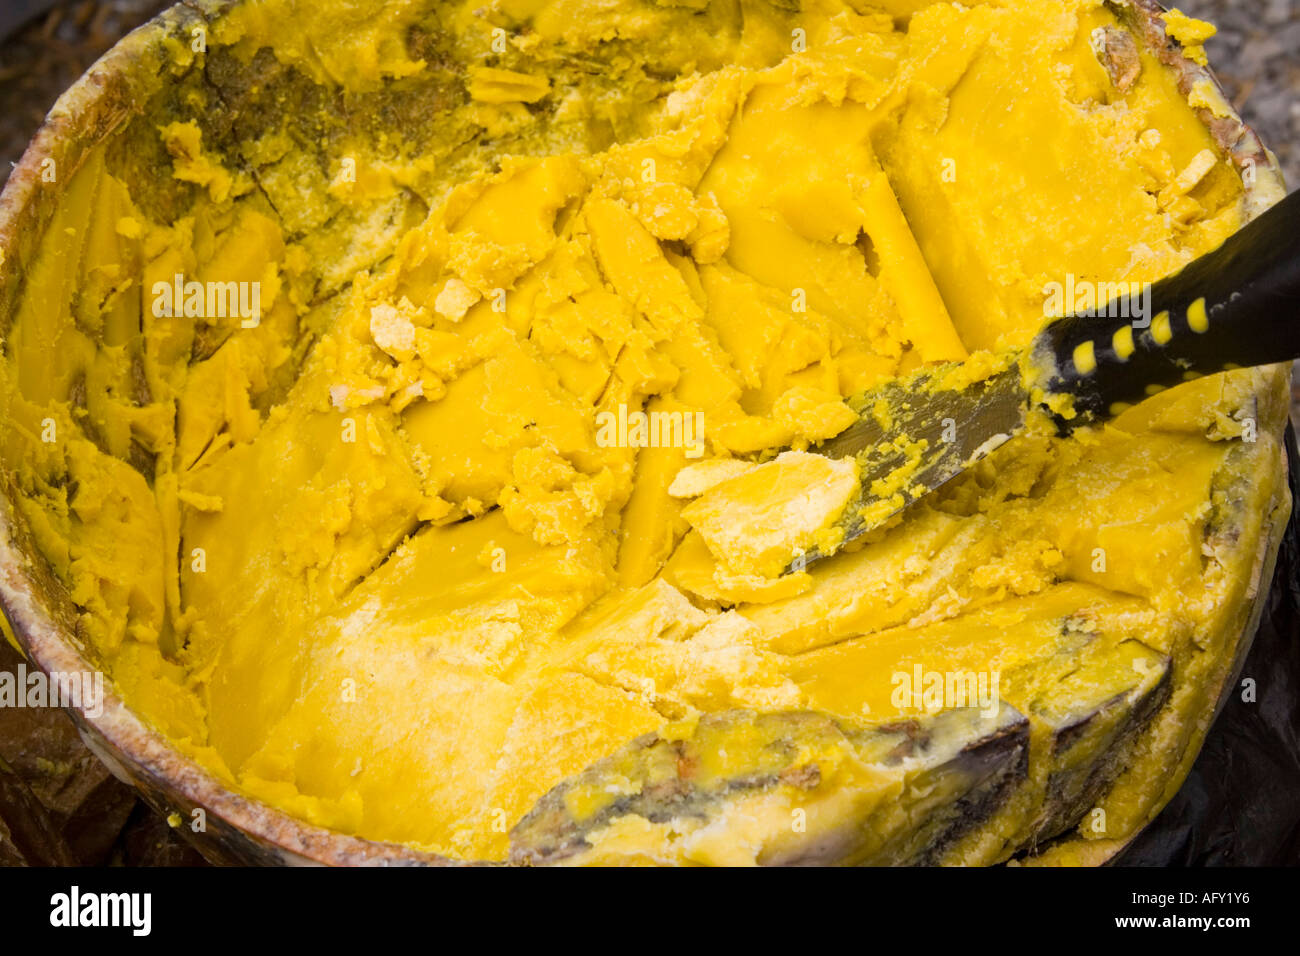 Shea butter from Ghana in bowl made from African Karite Shea tree butyrosperum parkii Stock Photo